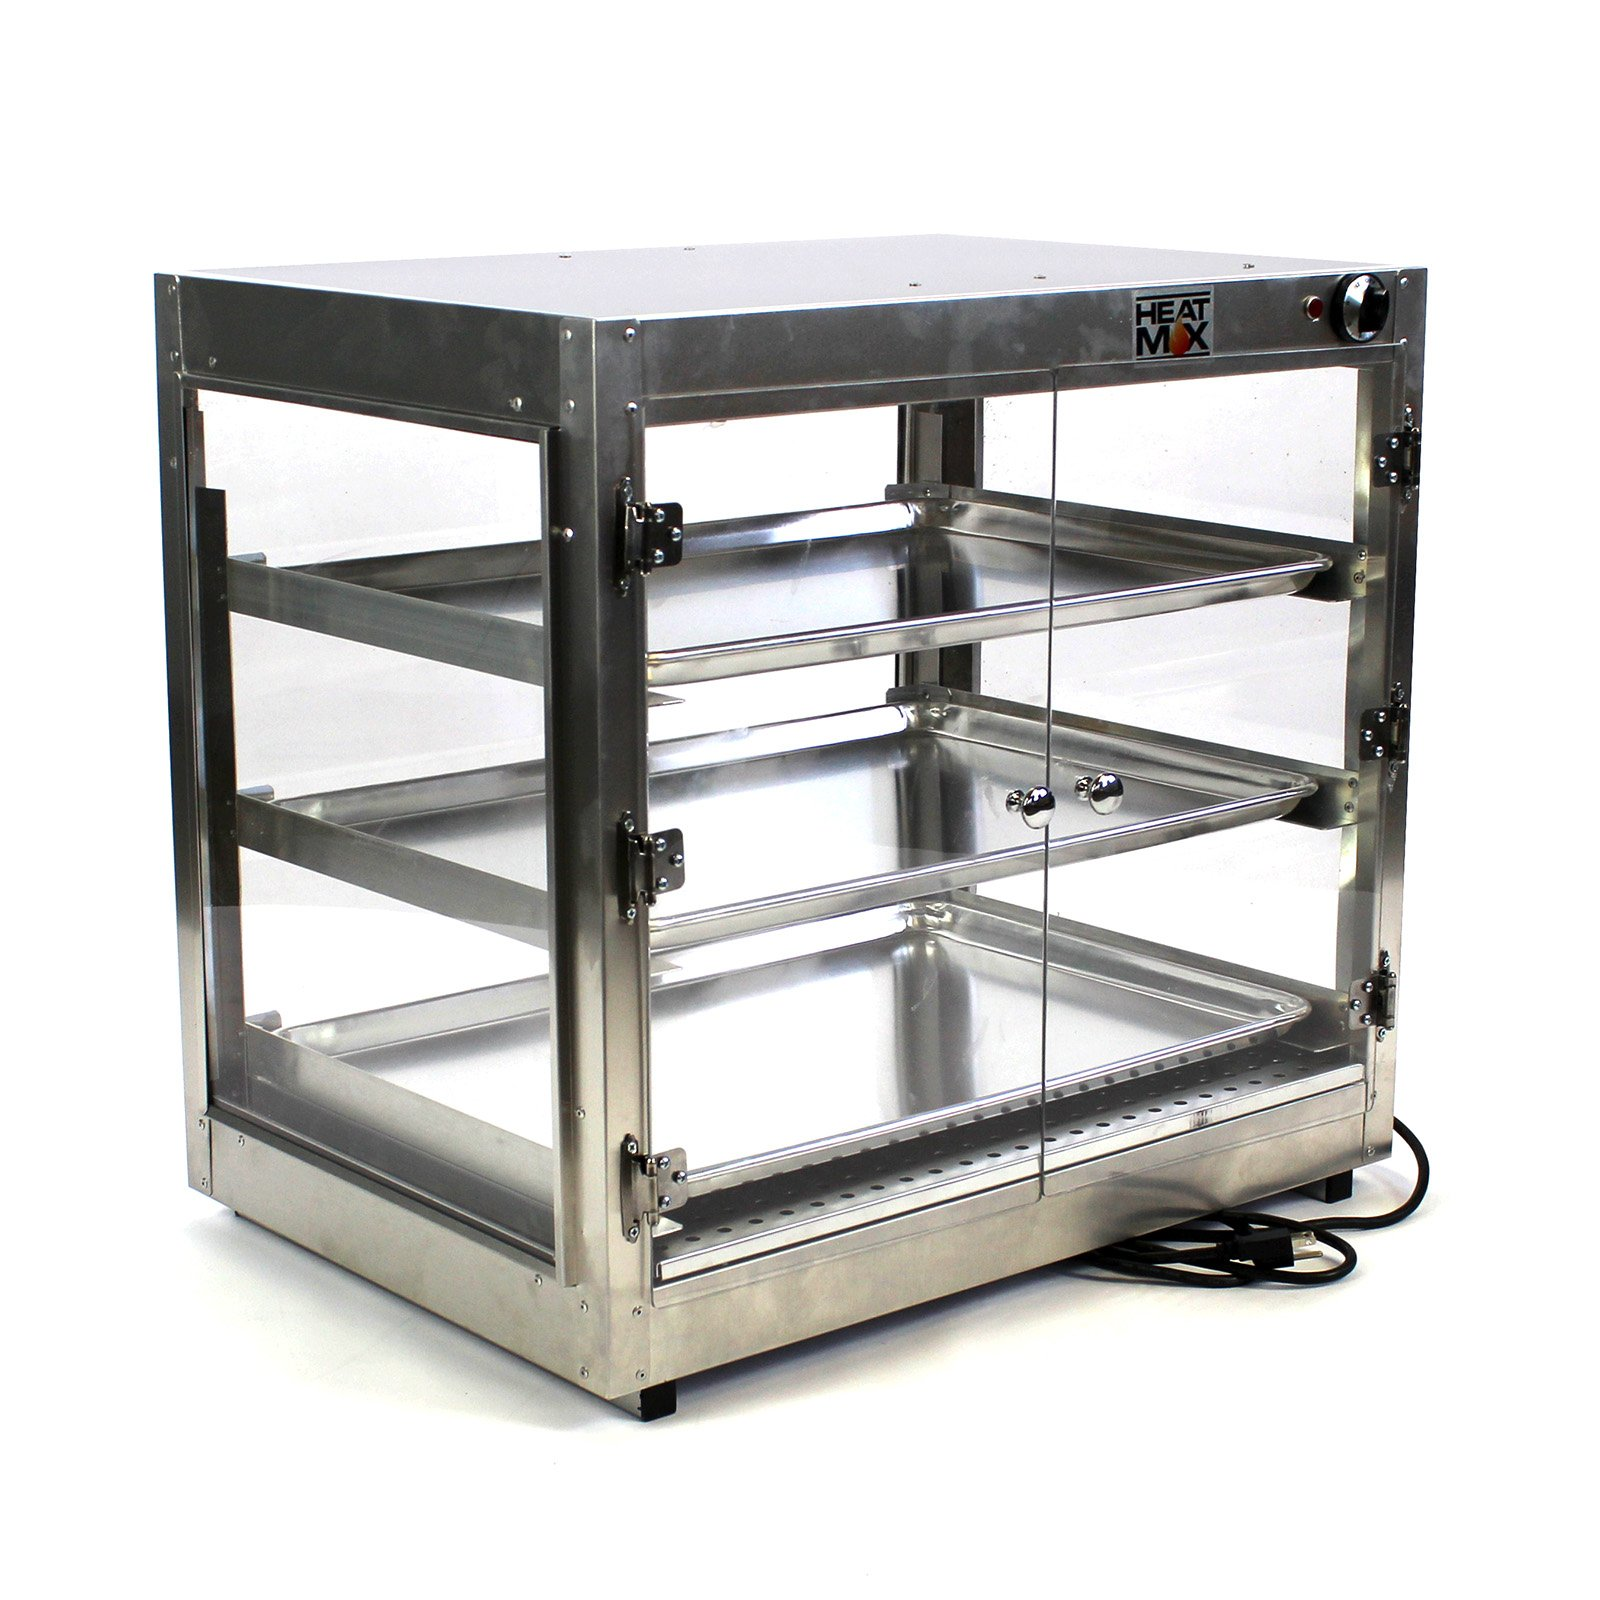 Commercial Food Warmer Sheet Pan Countertop Cabinet 29''x20''x27'' Wide Display